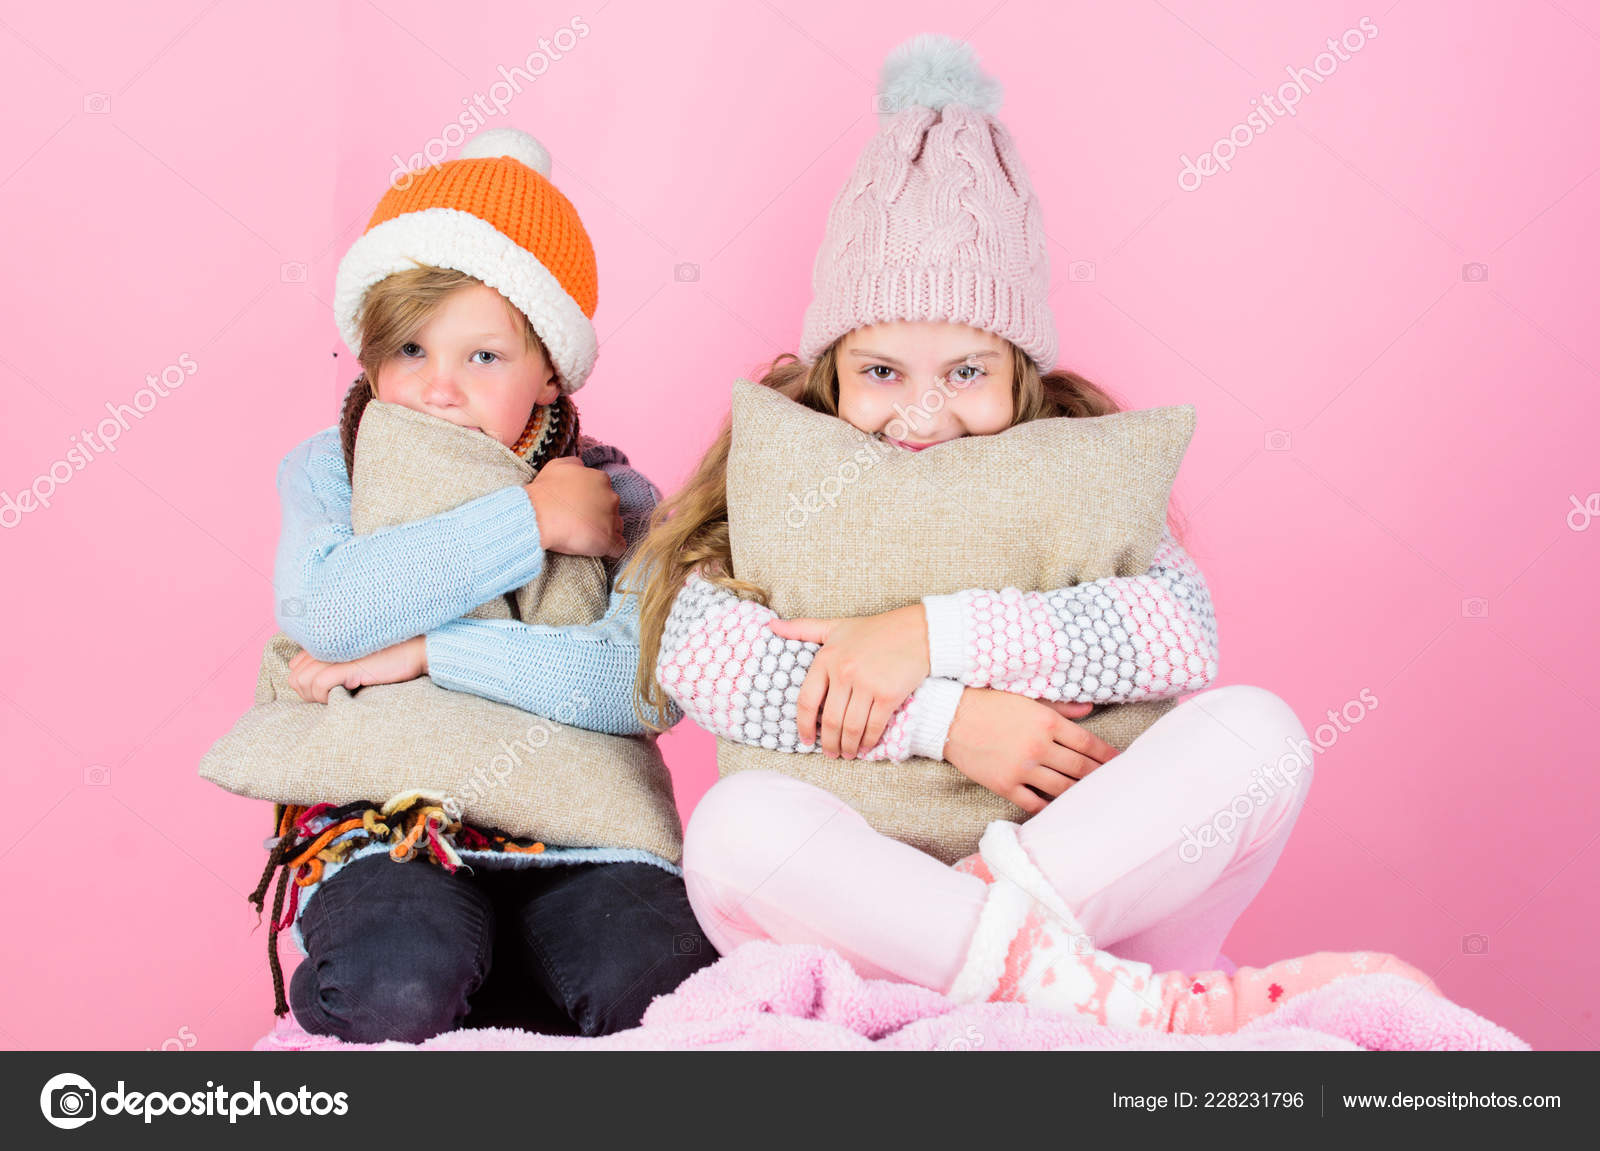 eb63c1148 Warm up your winter wear with cute and cozy accessories. Siblings ...